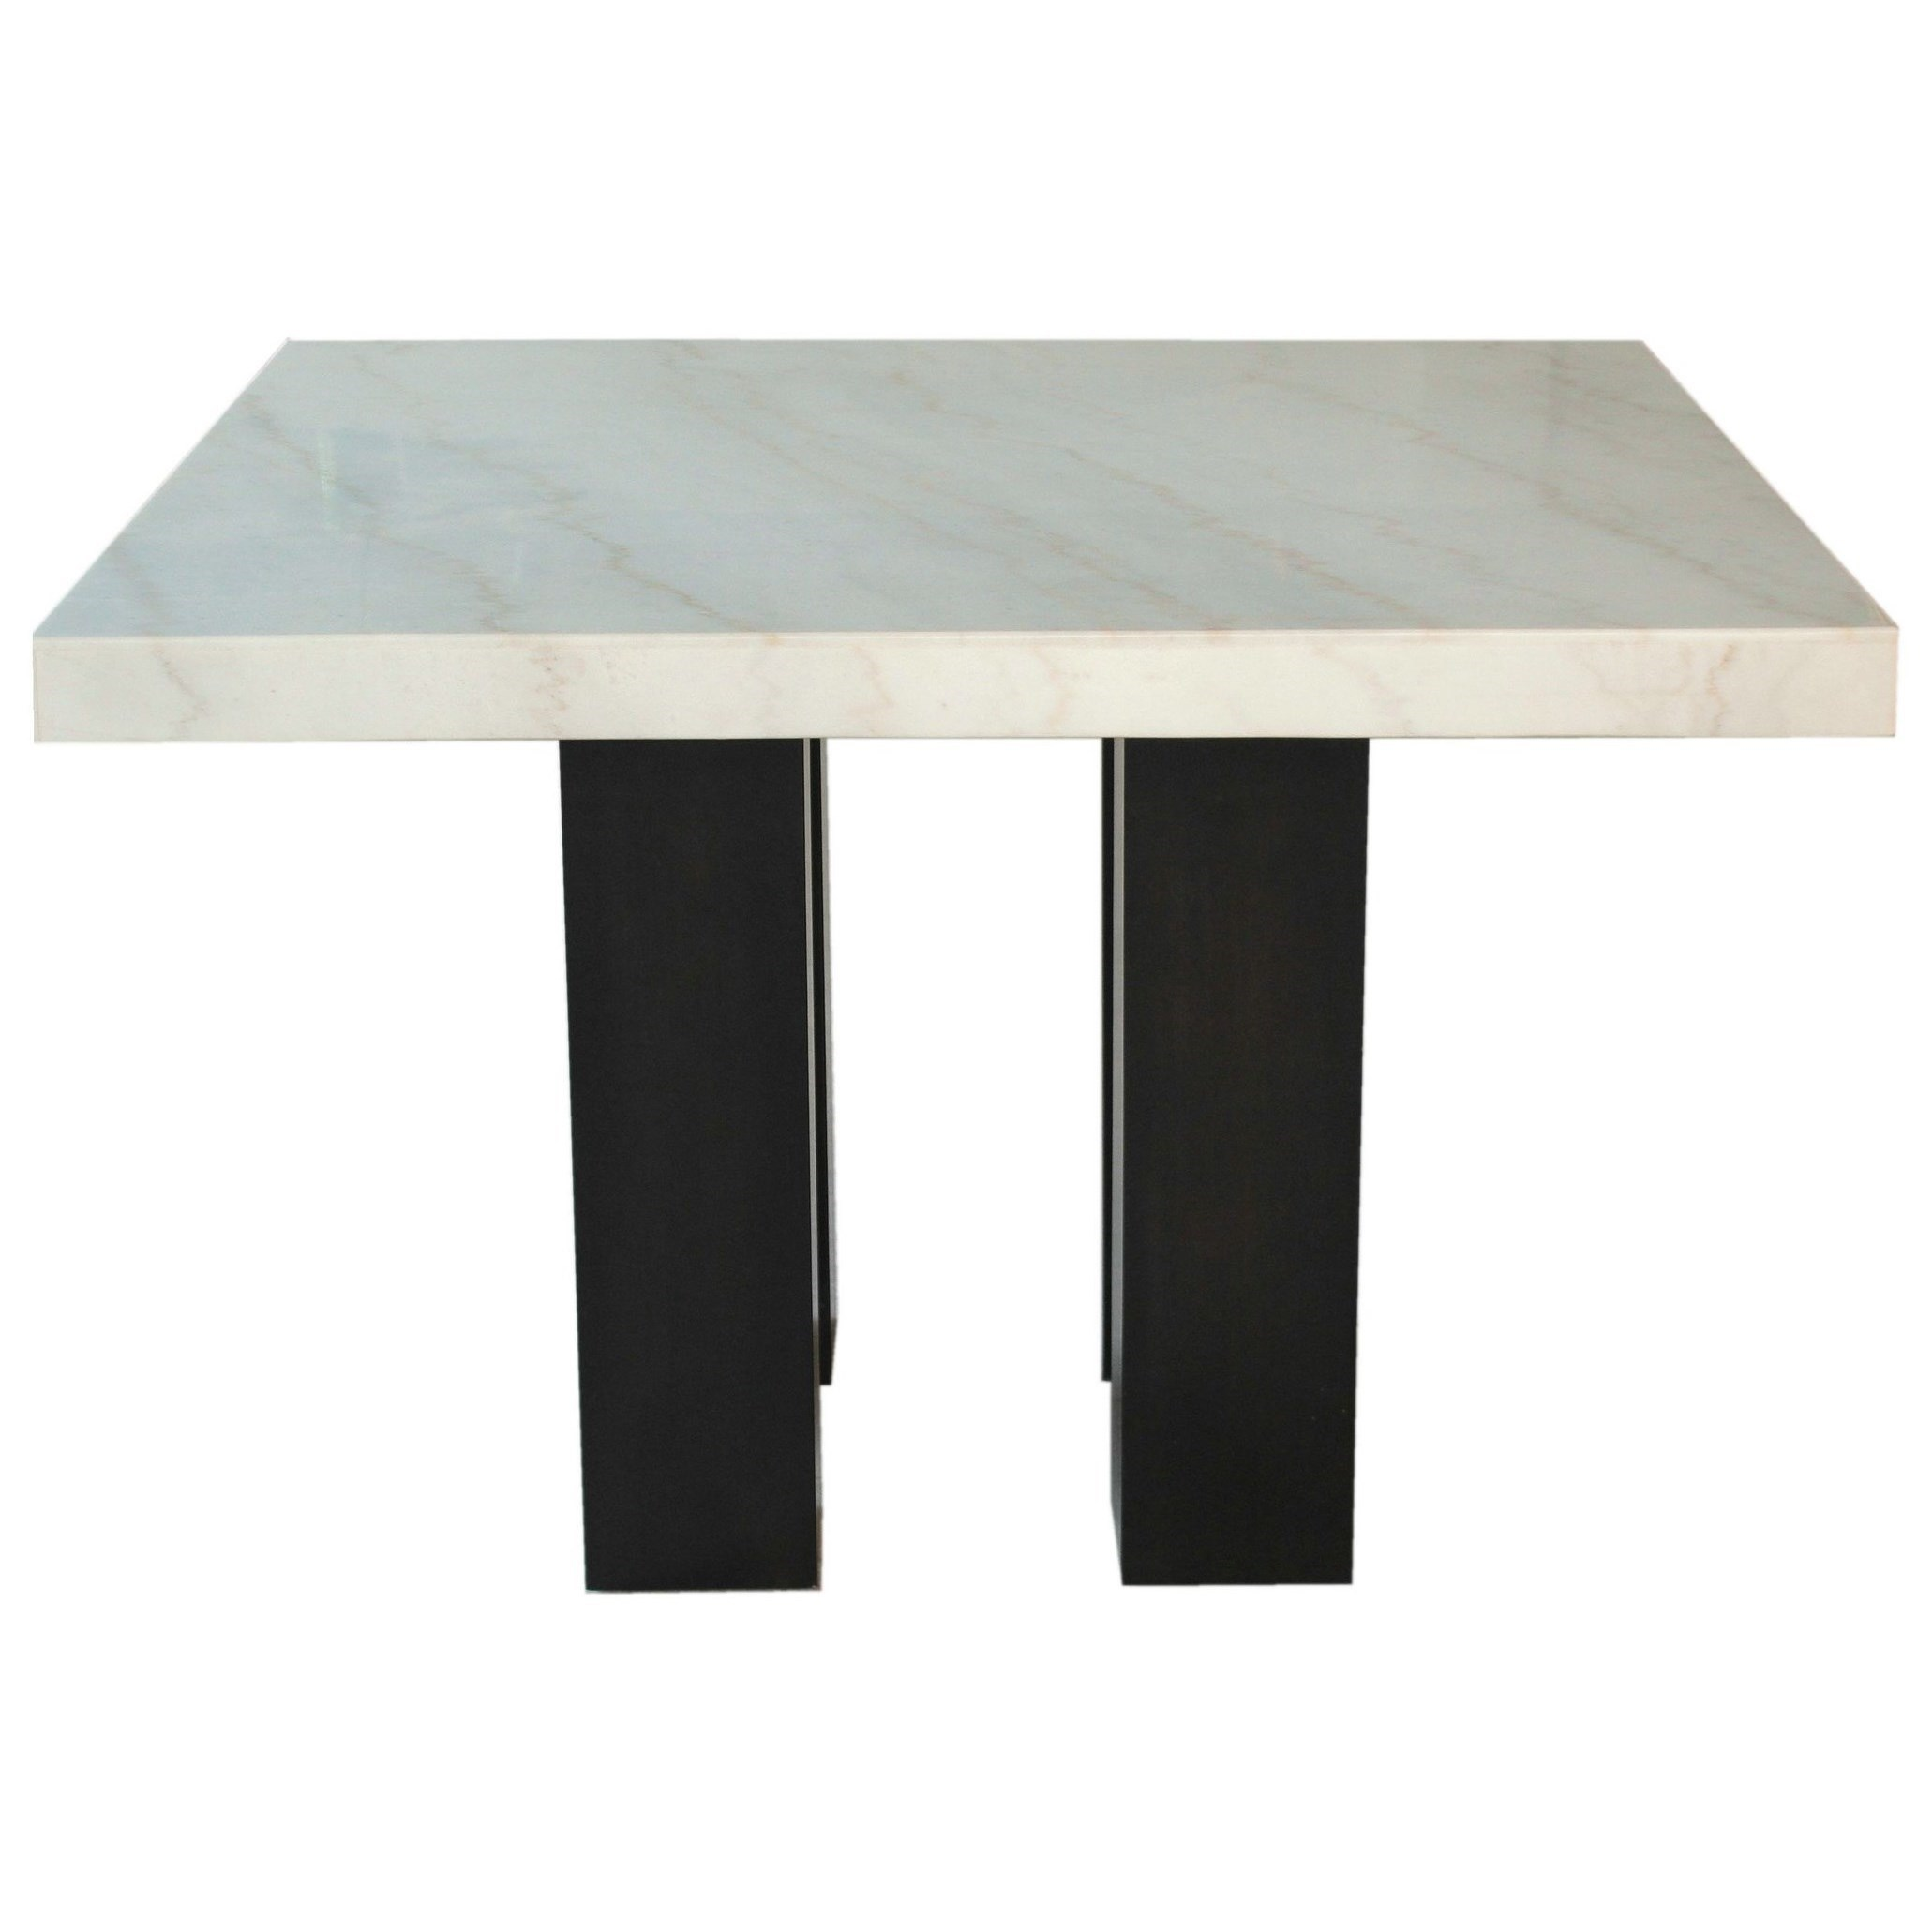 Camila Square Dining Table by Steve Silver at Walker's Furniture